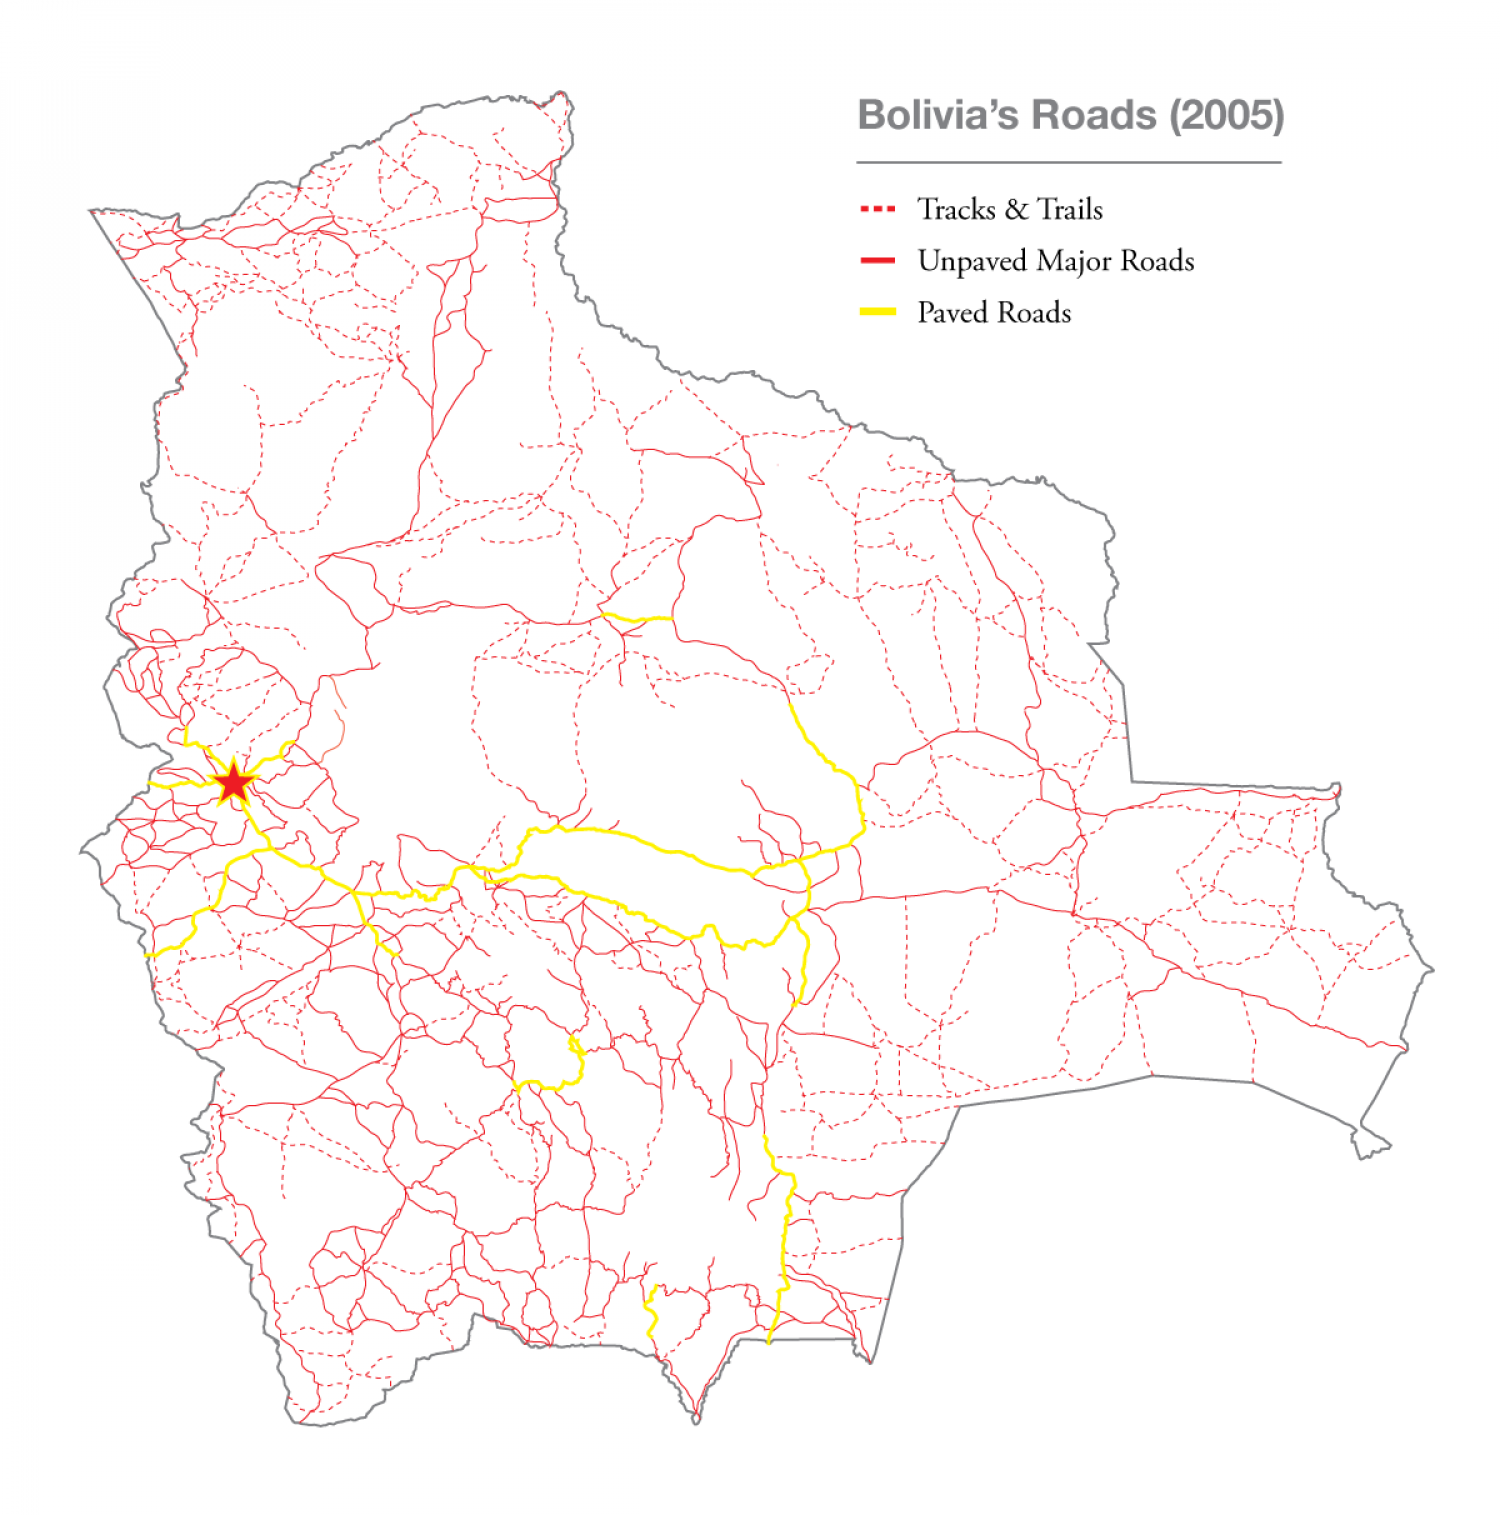 Bolivia's Roads (2005) Infographic